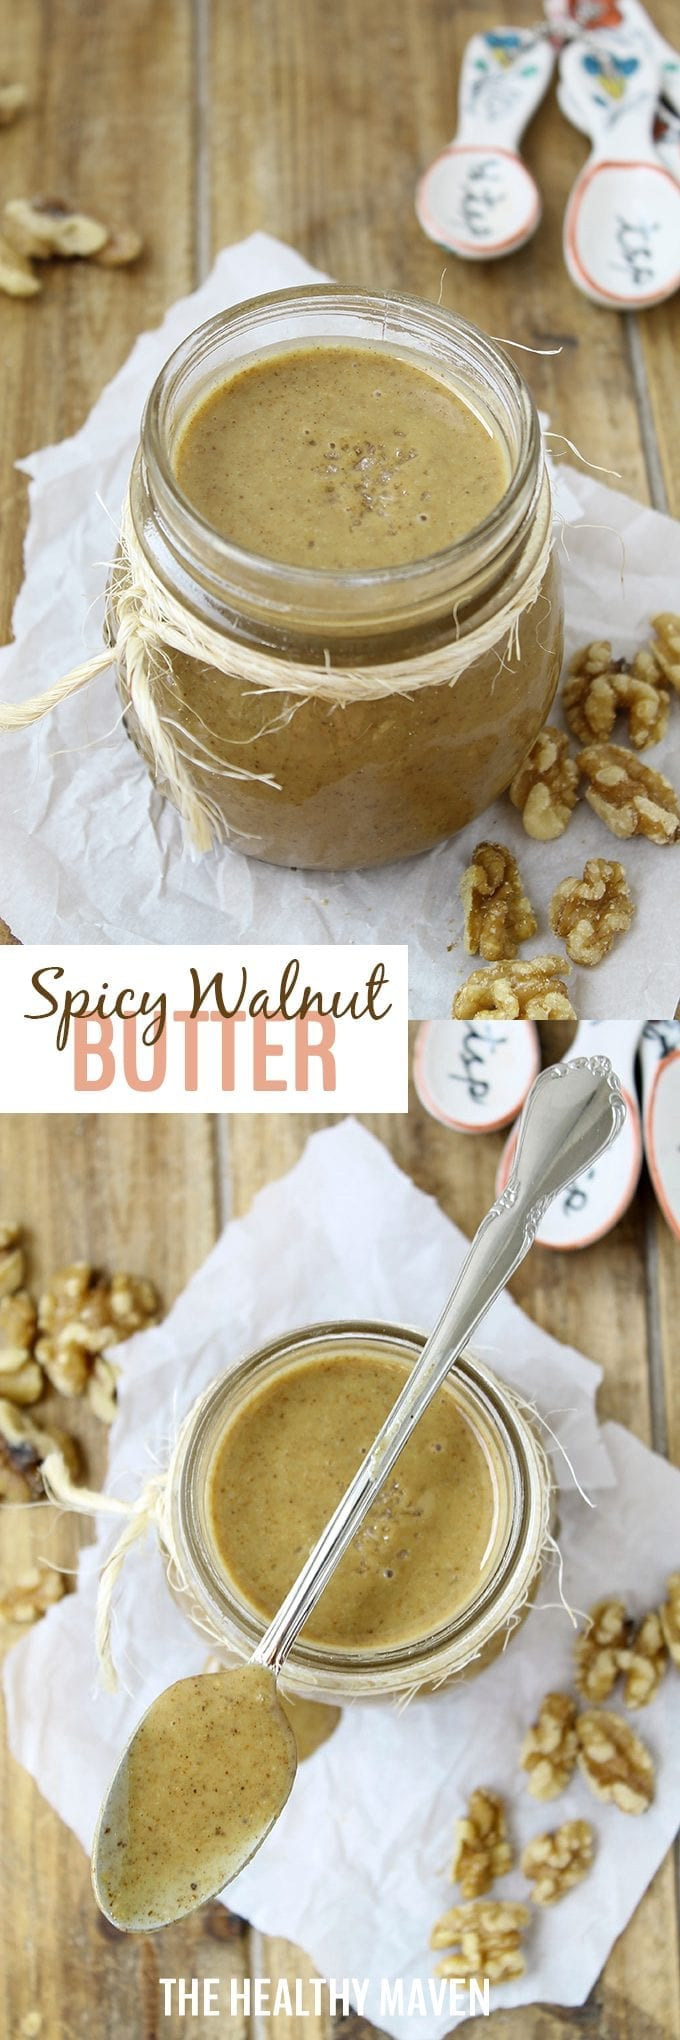 Spicy Walnut Butter - an easy DIY nut butter recipe made with toasted walnuts and spices you'll find in your cupboard.